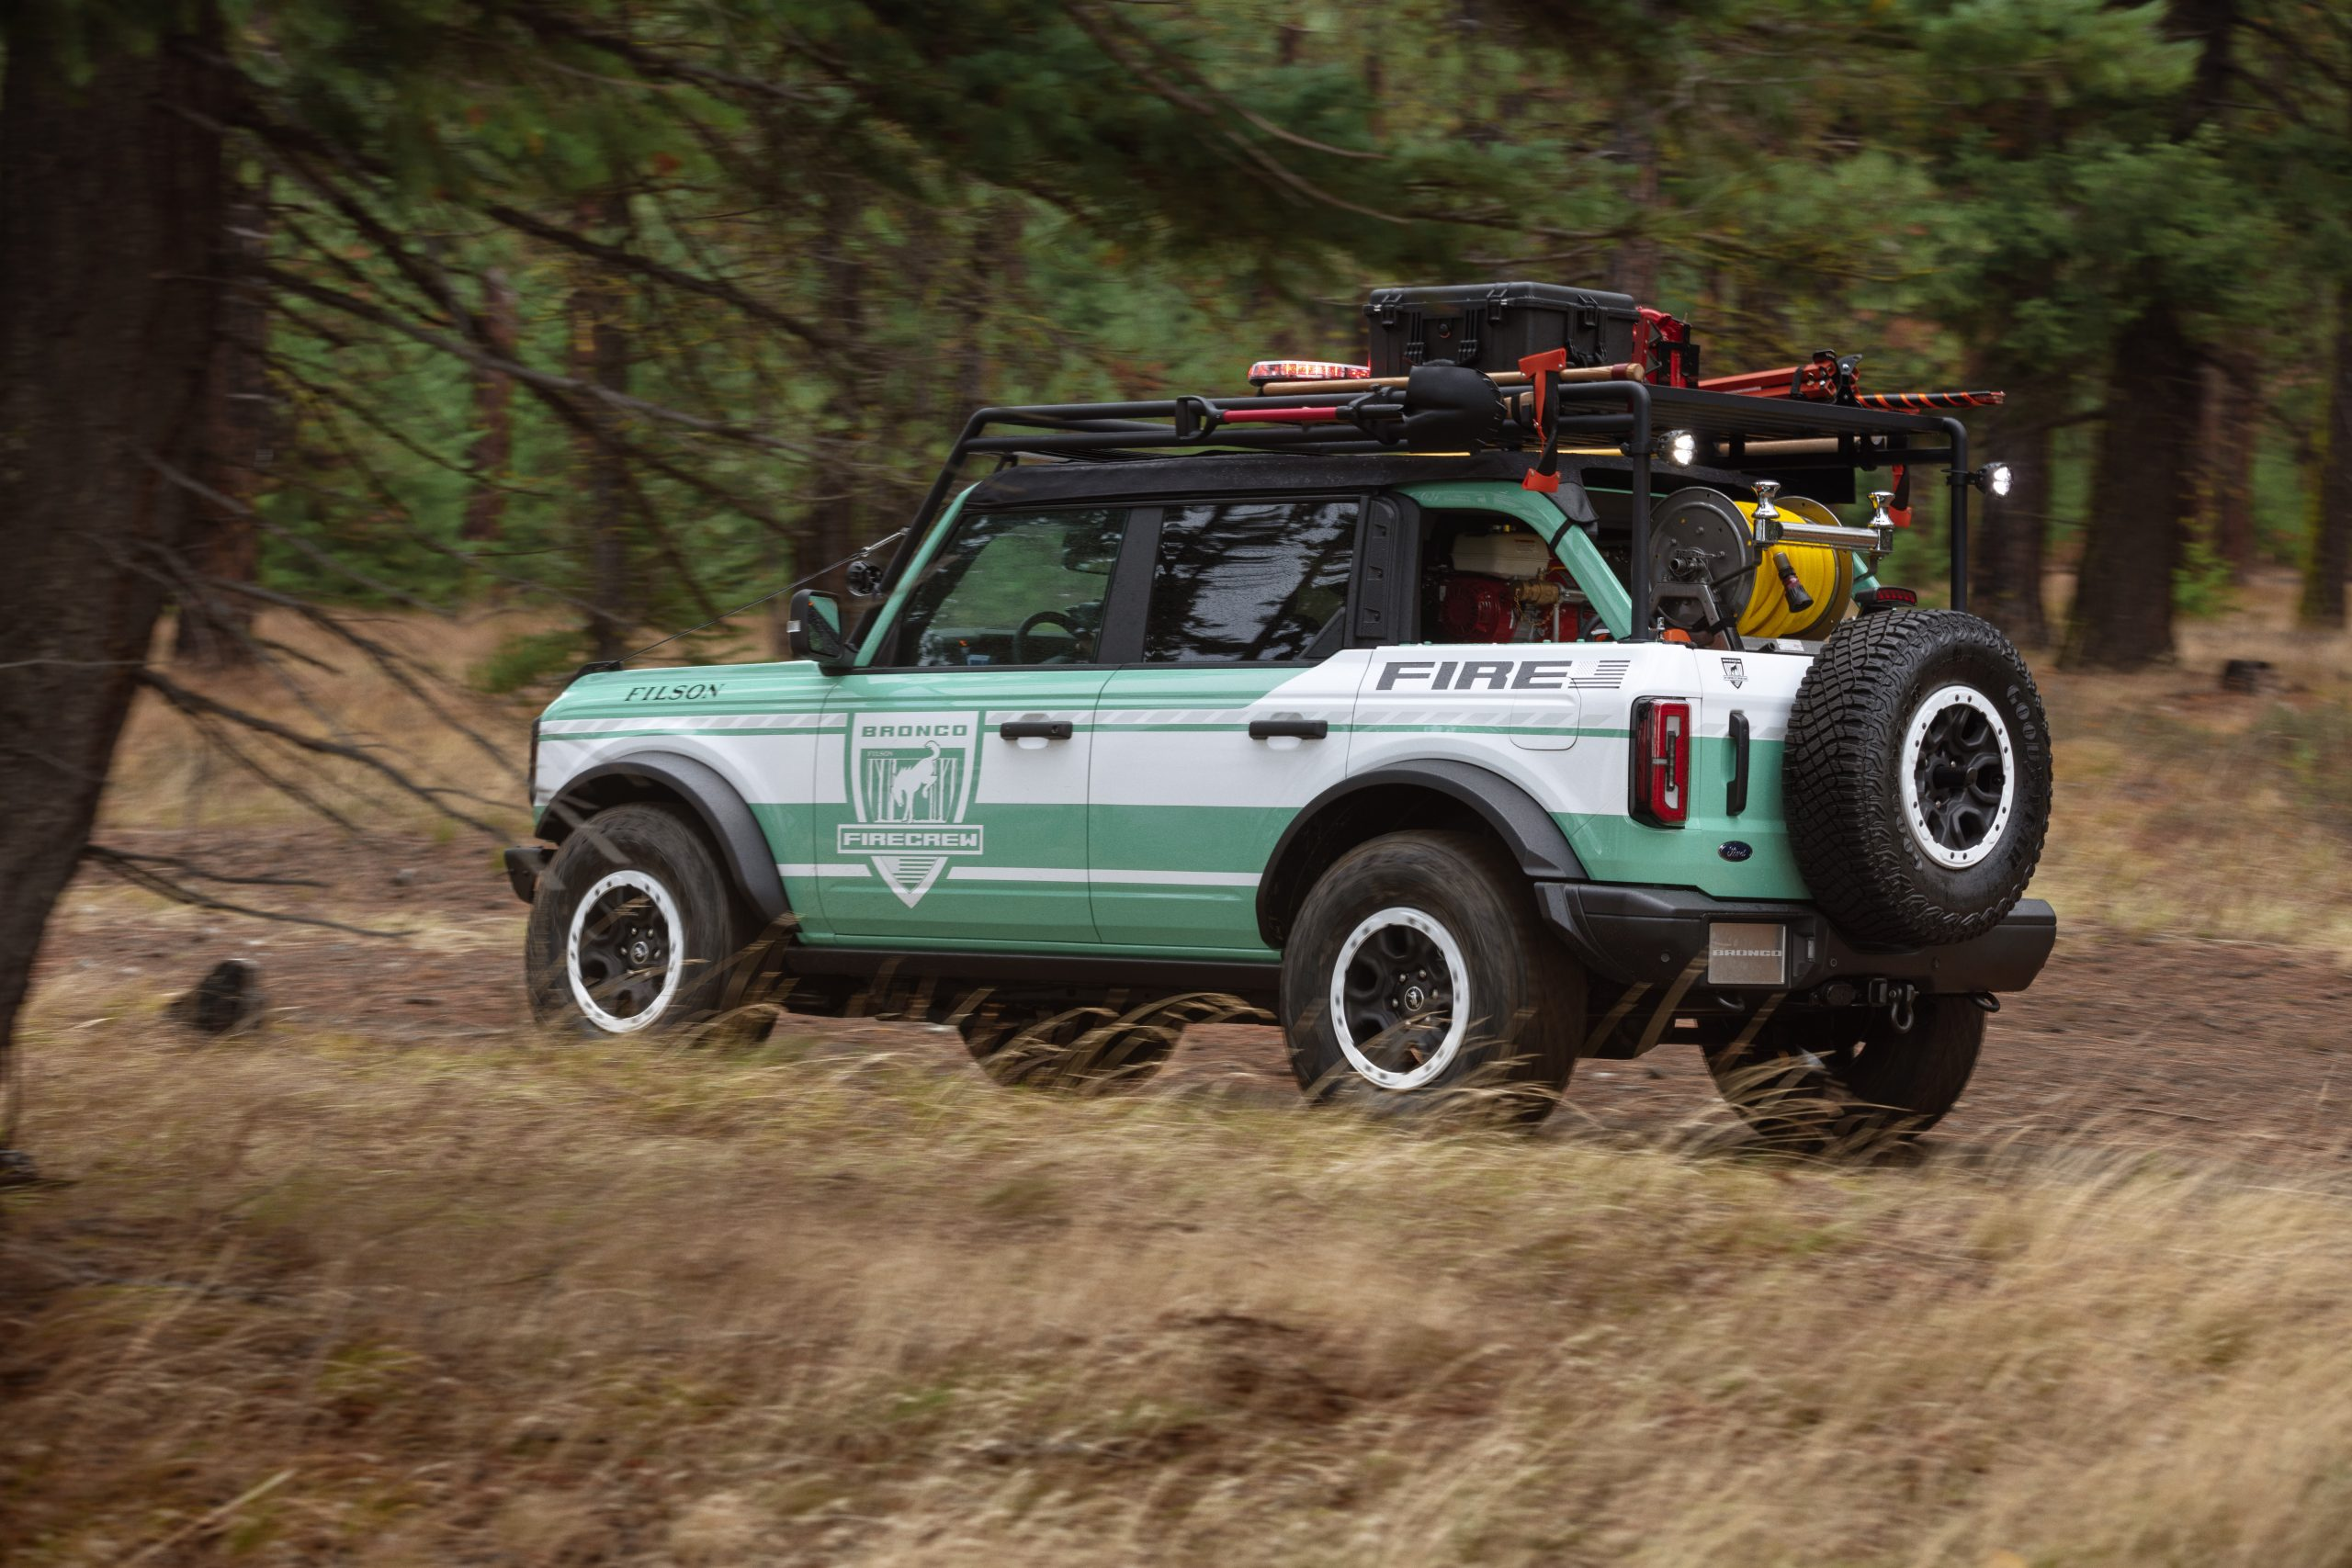 Bronco + Filson Wildland Fire Rig Concept driving in woods